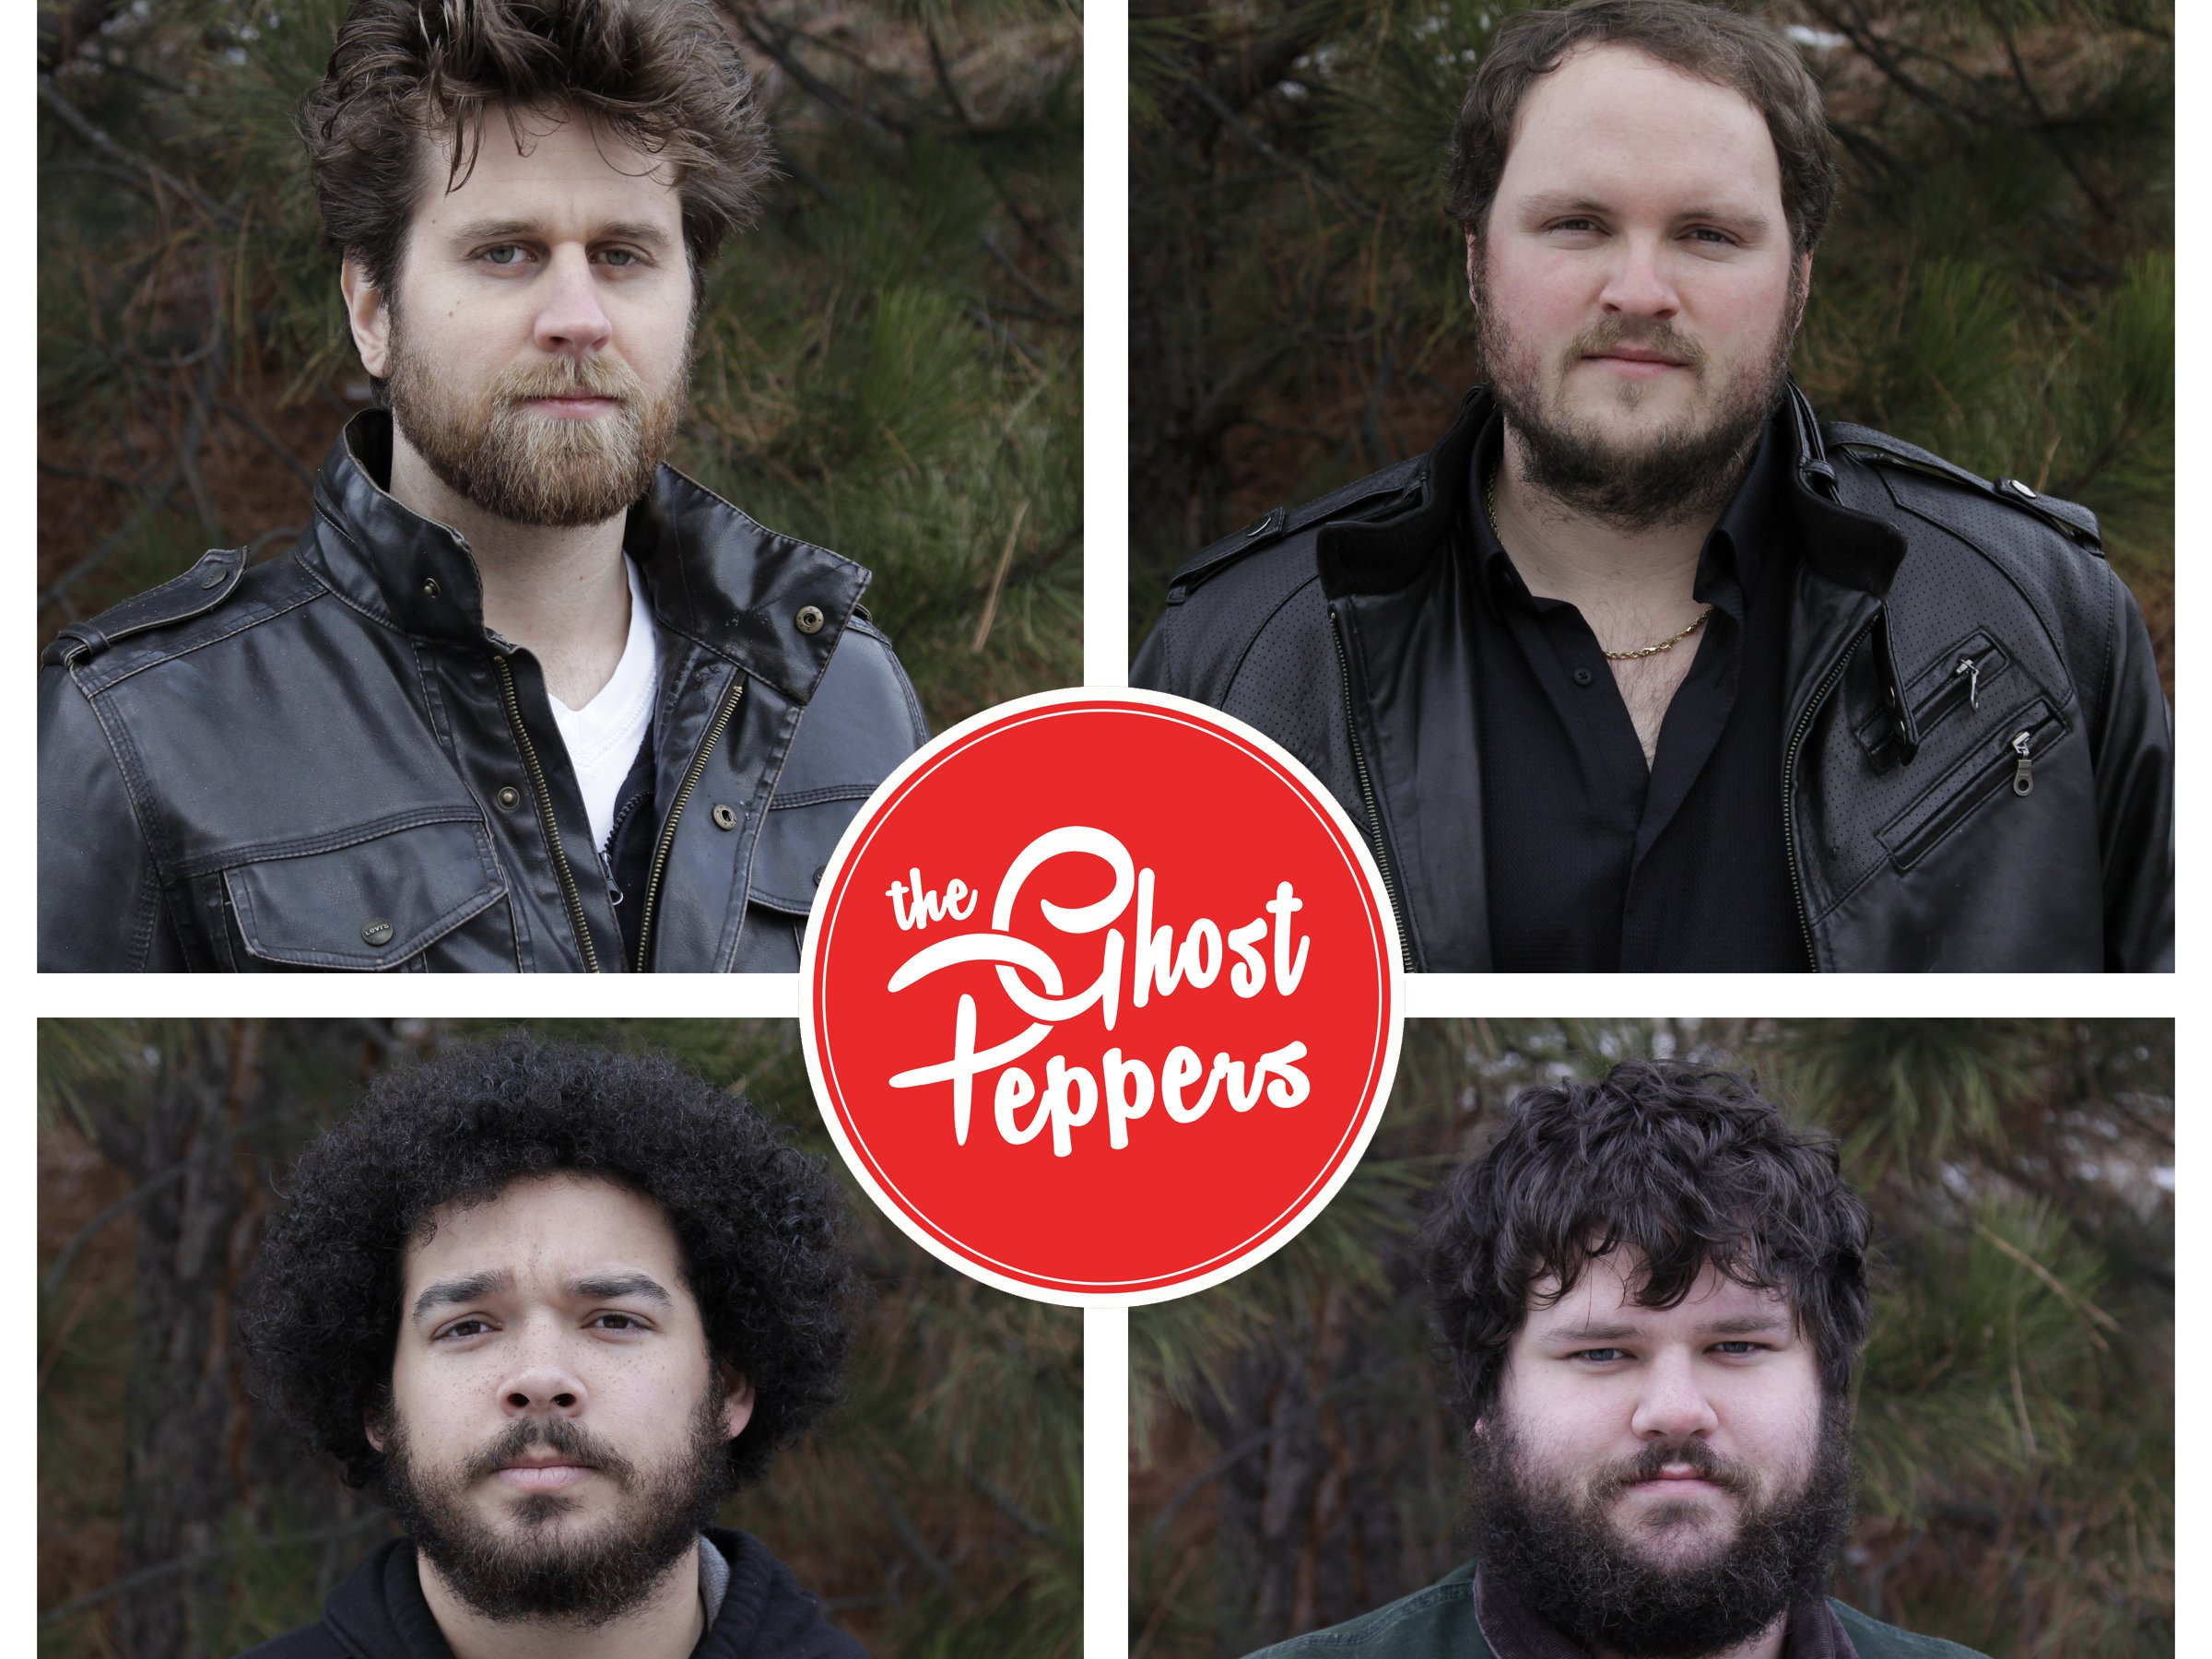 Image for The Ghost Peppers